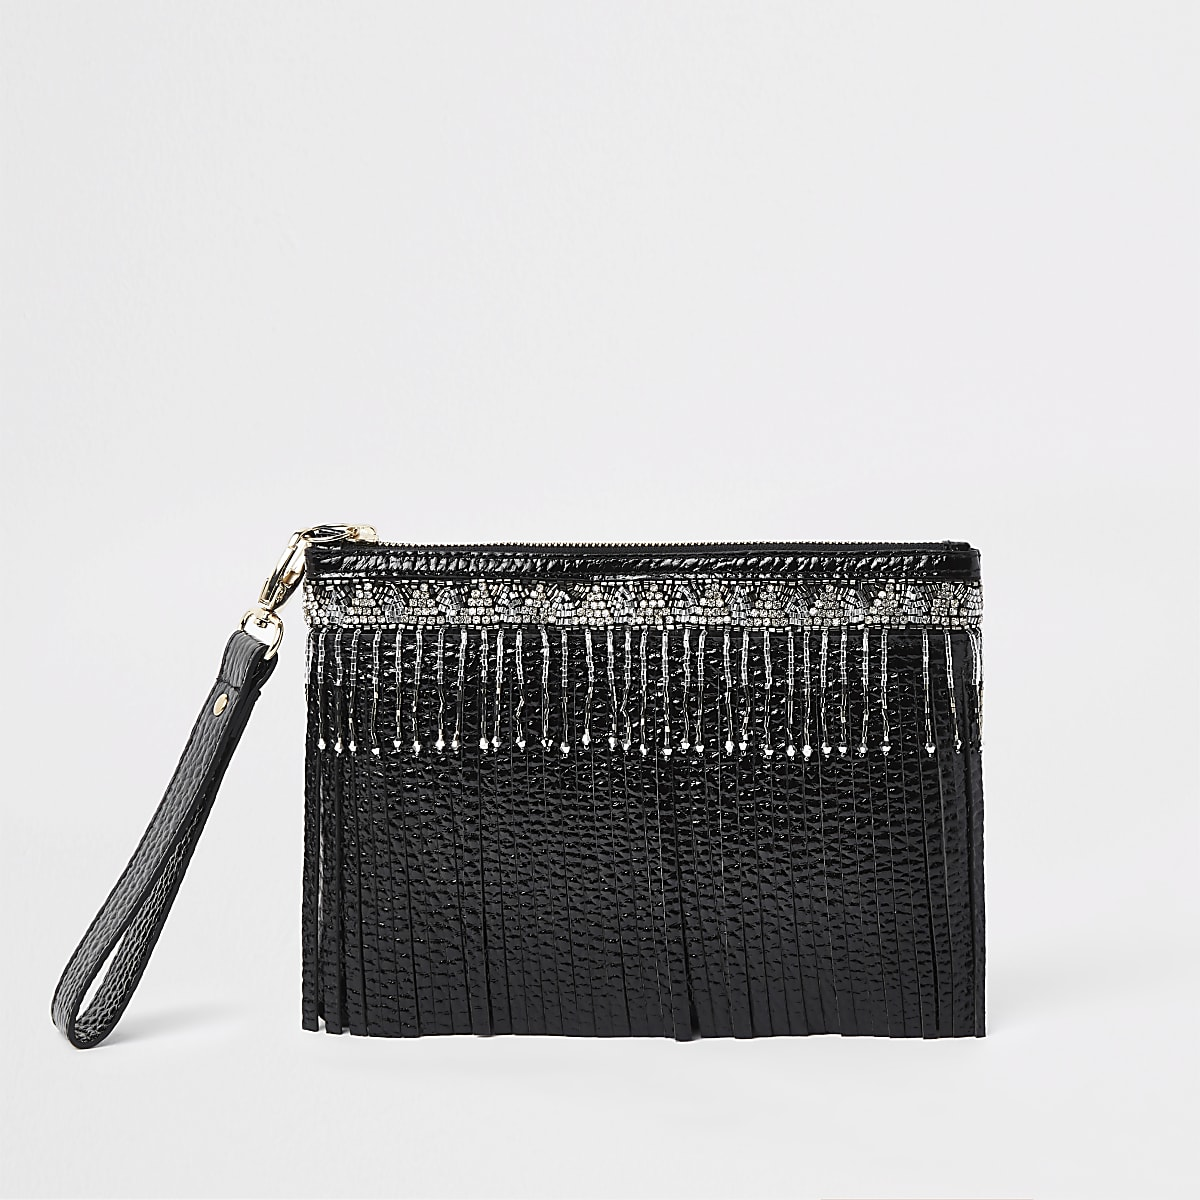 Black leather beaded fringe clutch bag